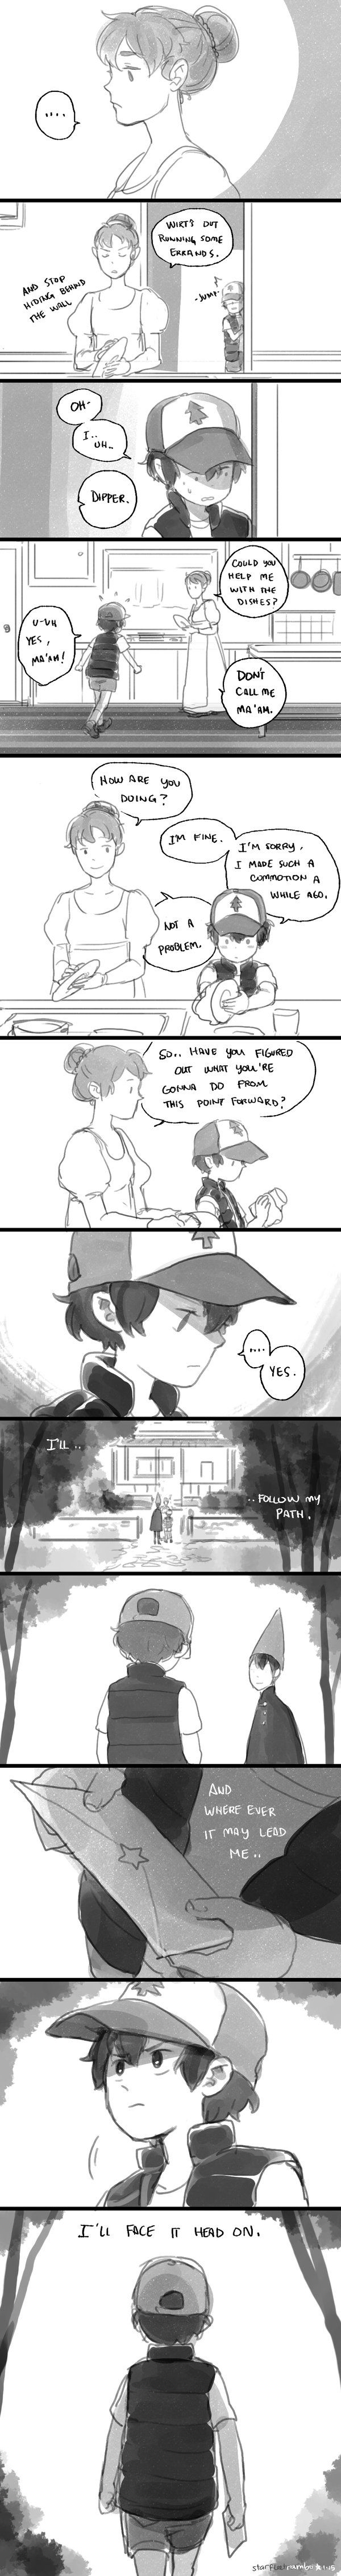 Over the Garden Wall Au - Garden Falls Chapter 9 宇宙艦隊RAMBO